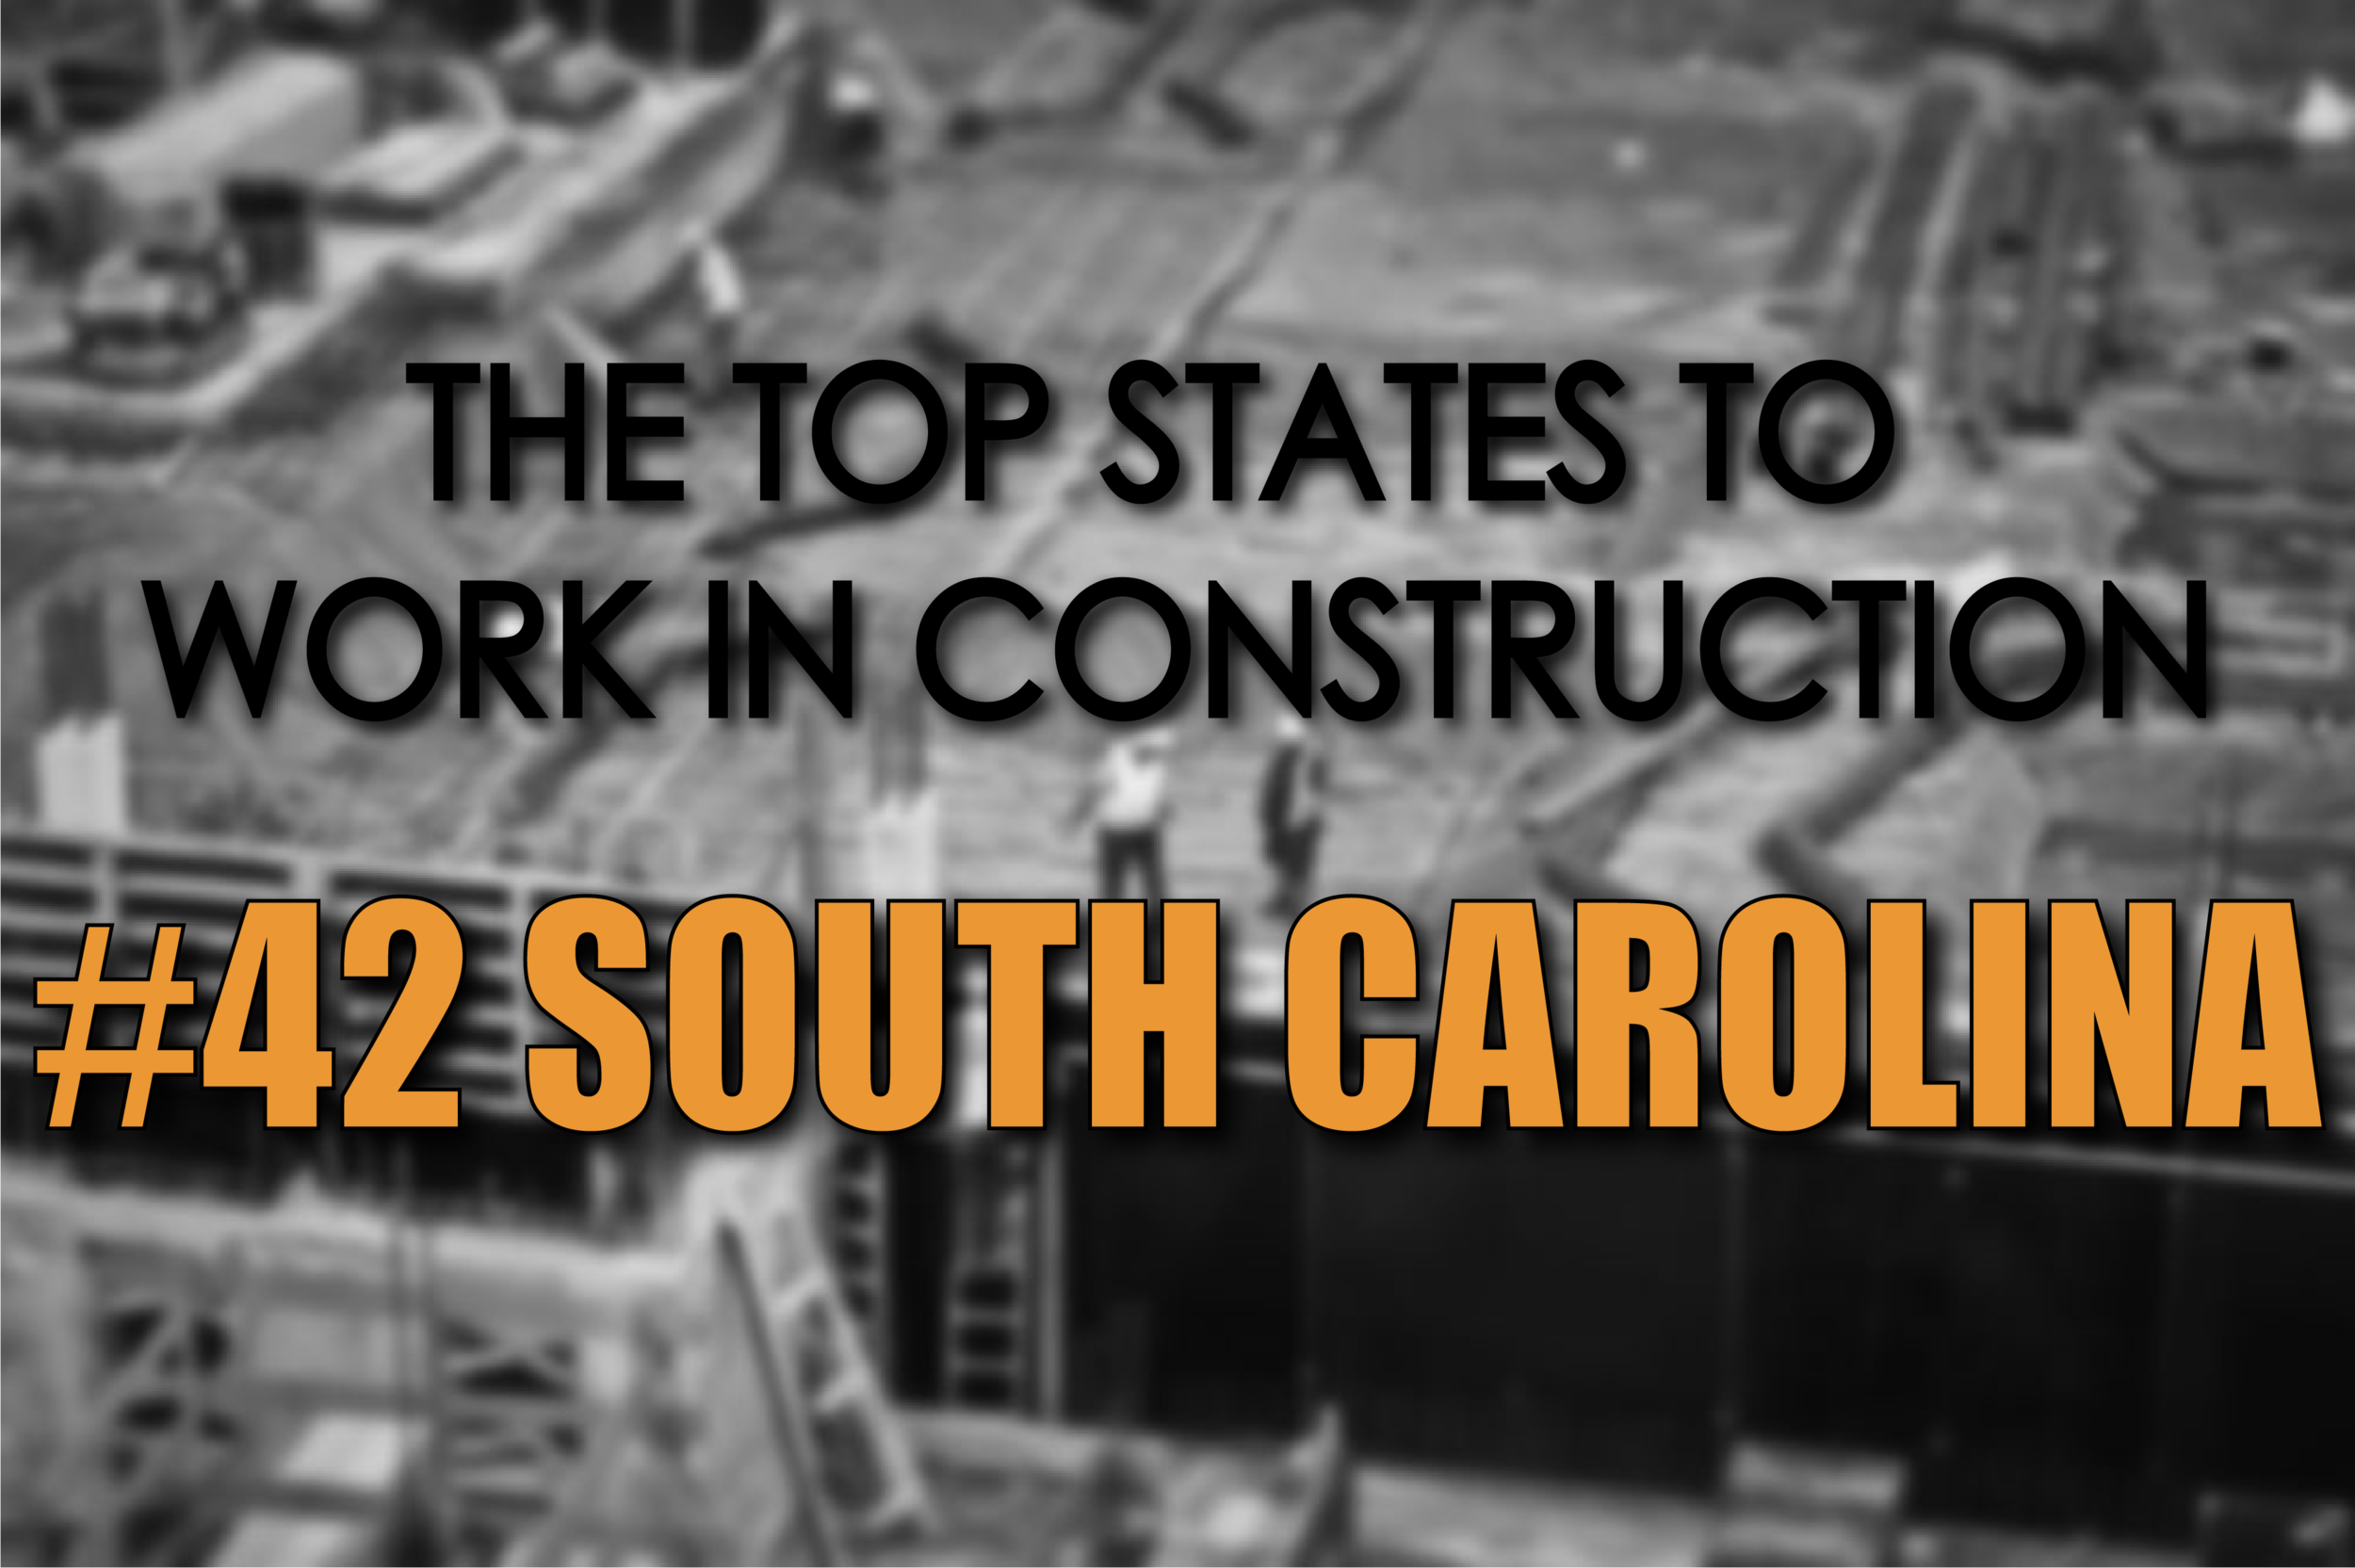 South Carolina best states to work in construction